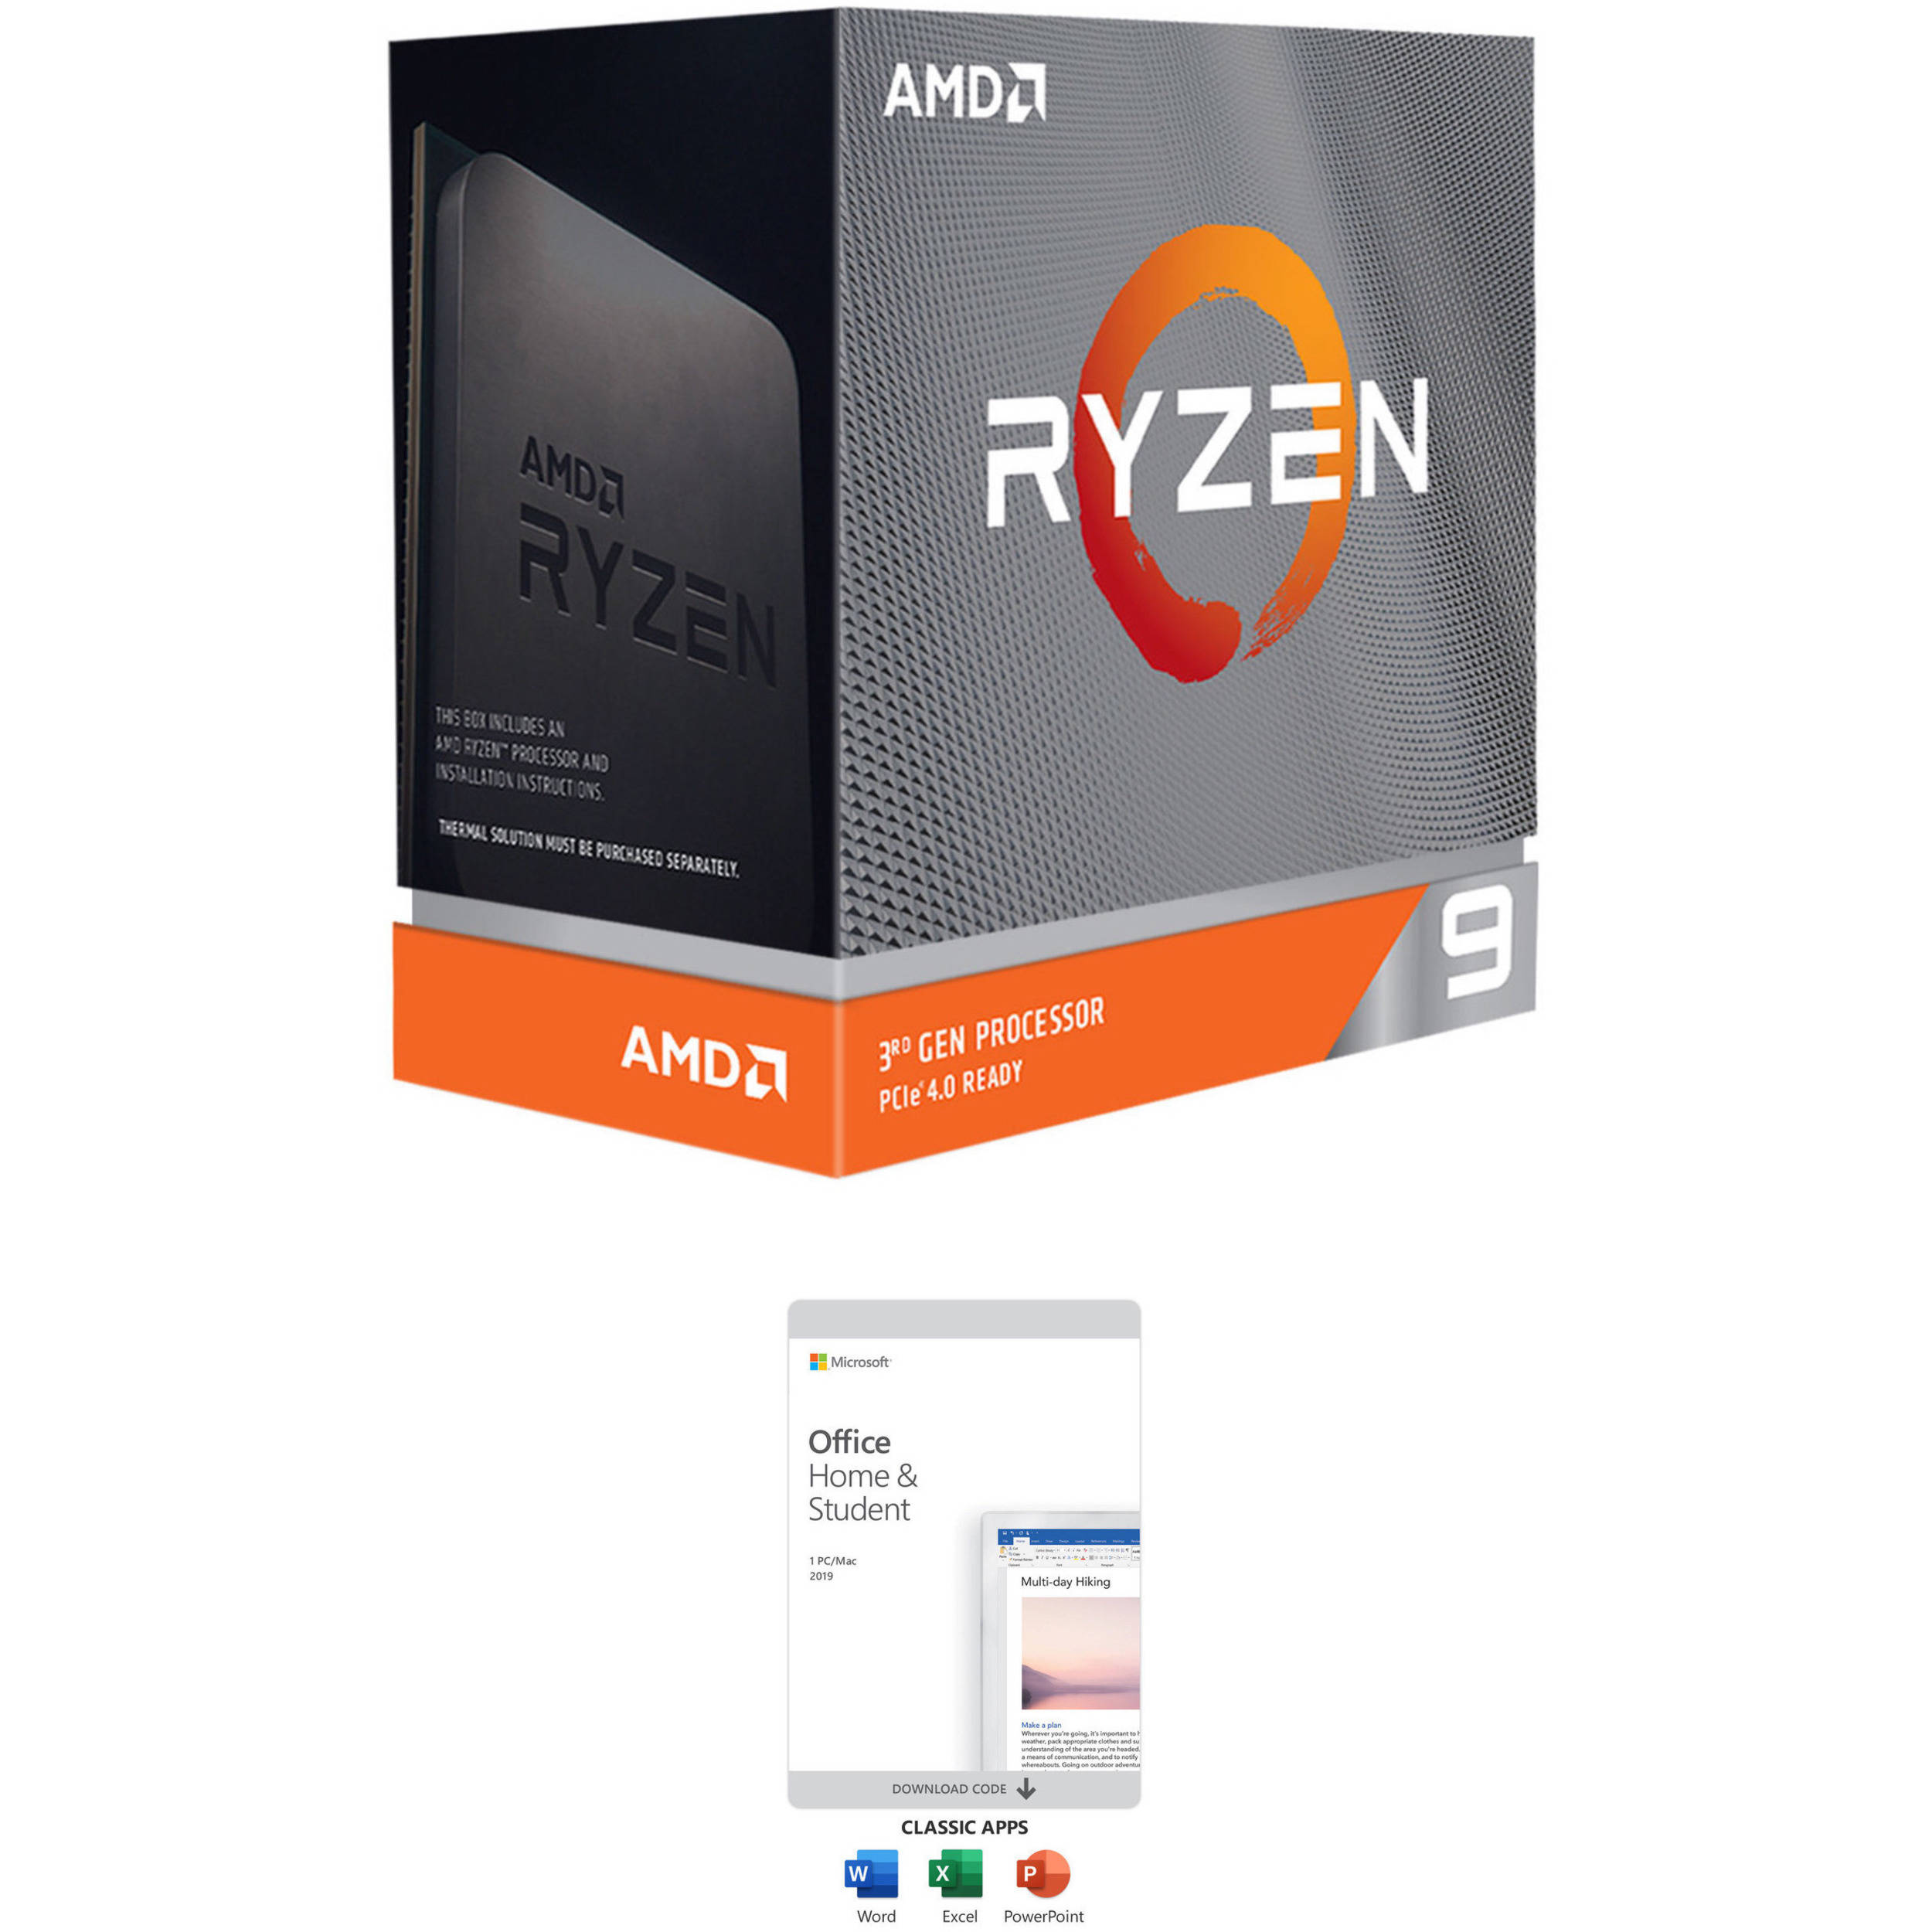 Amd Ryzen 9 3950x 3 5 Ghz 16 Core Am4 Processor With Microsoft